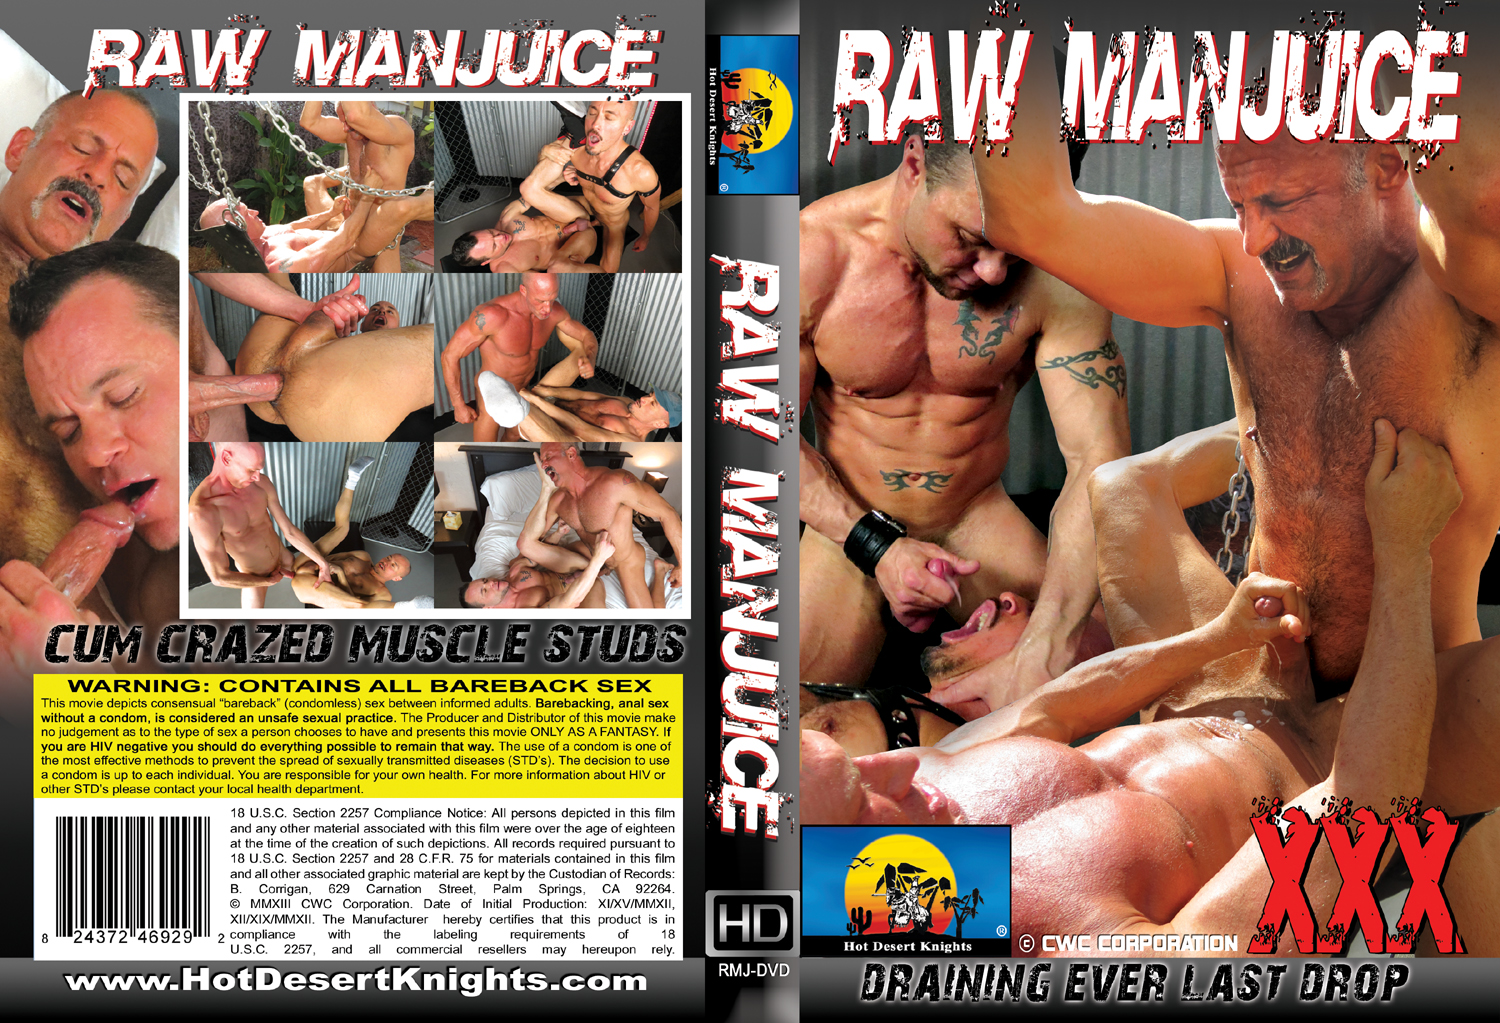 HDK Movie: RAW MANJUICE